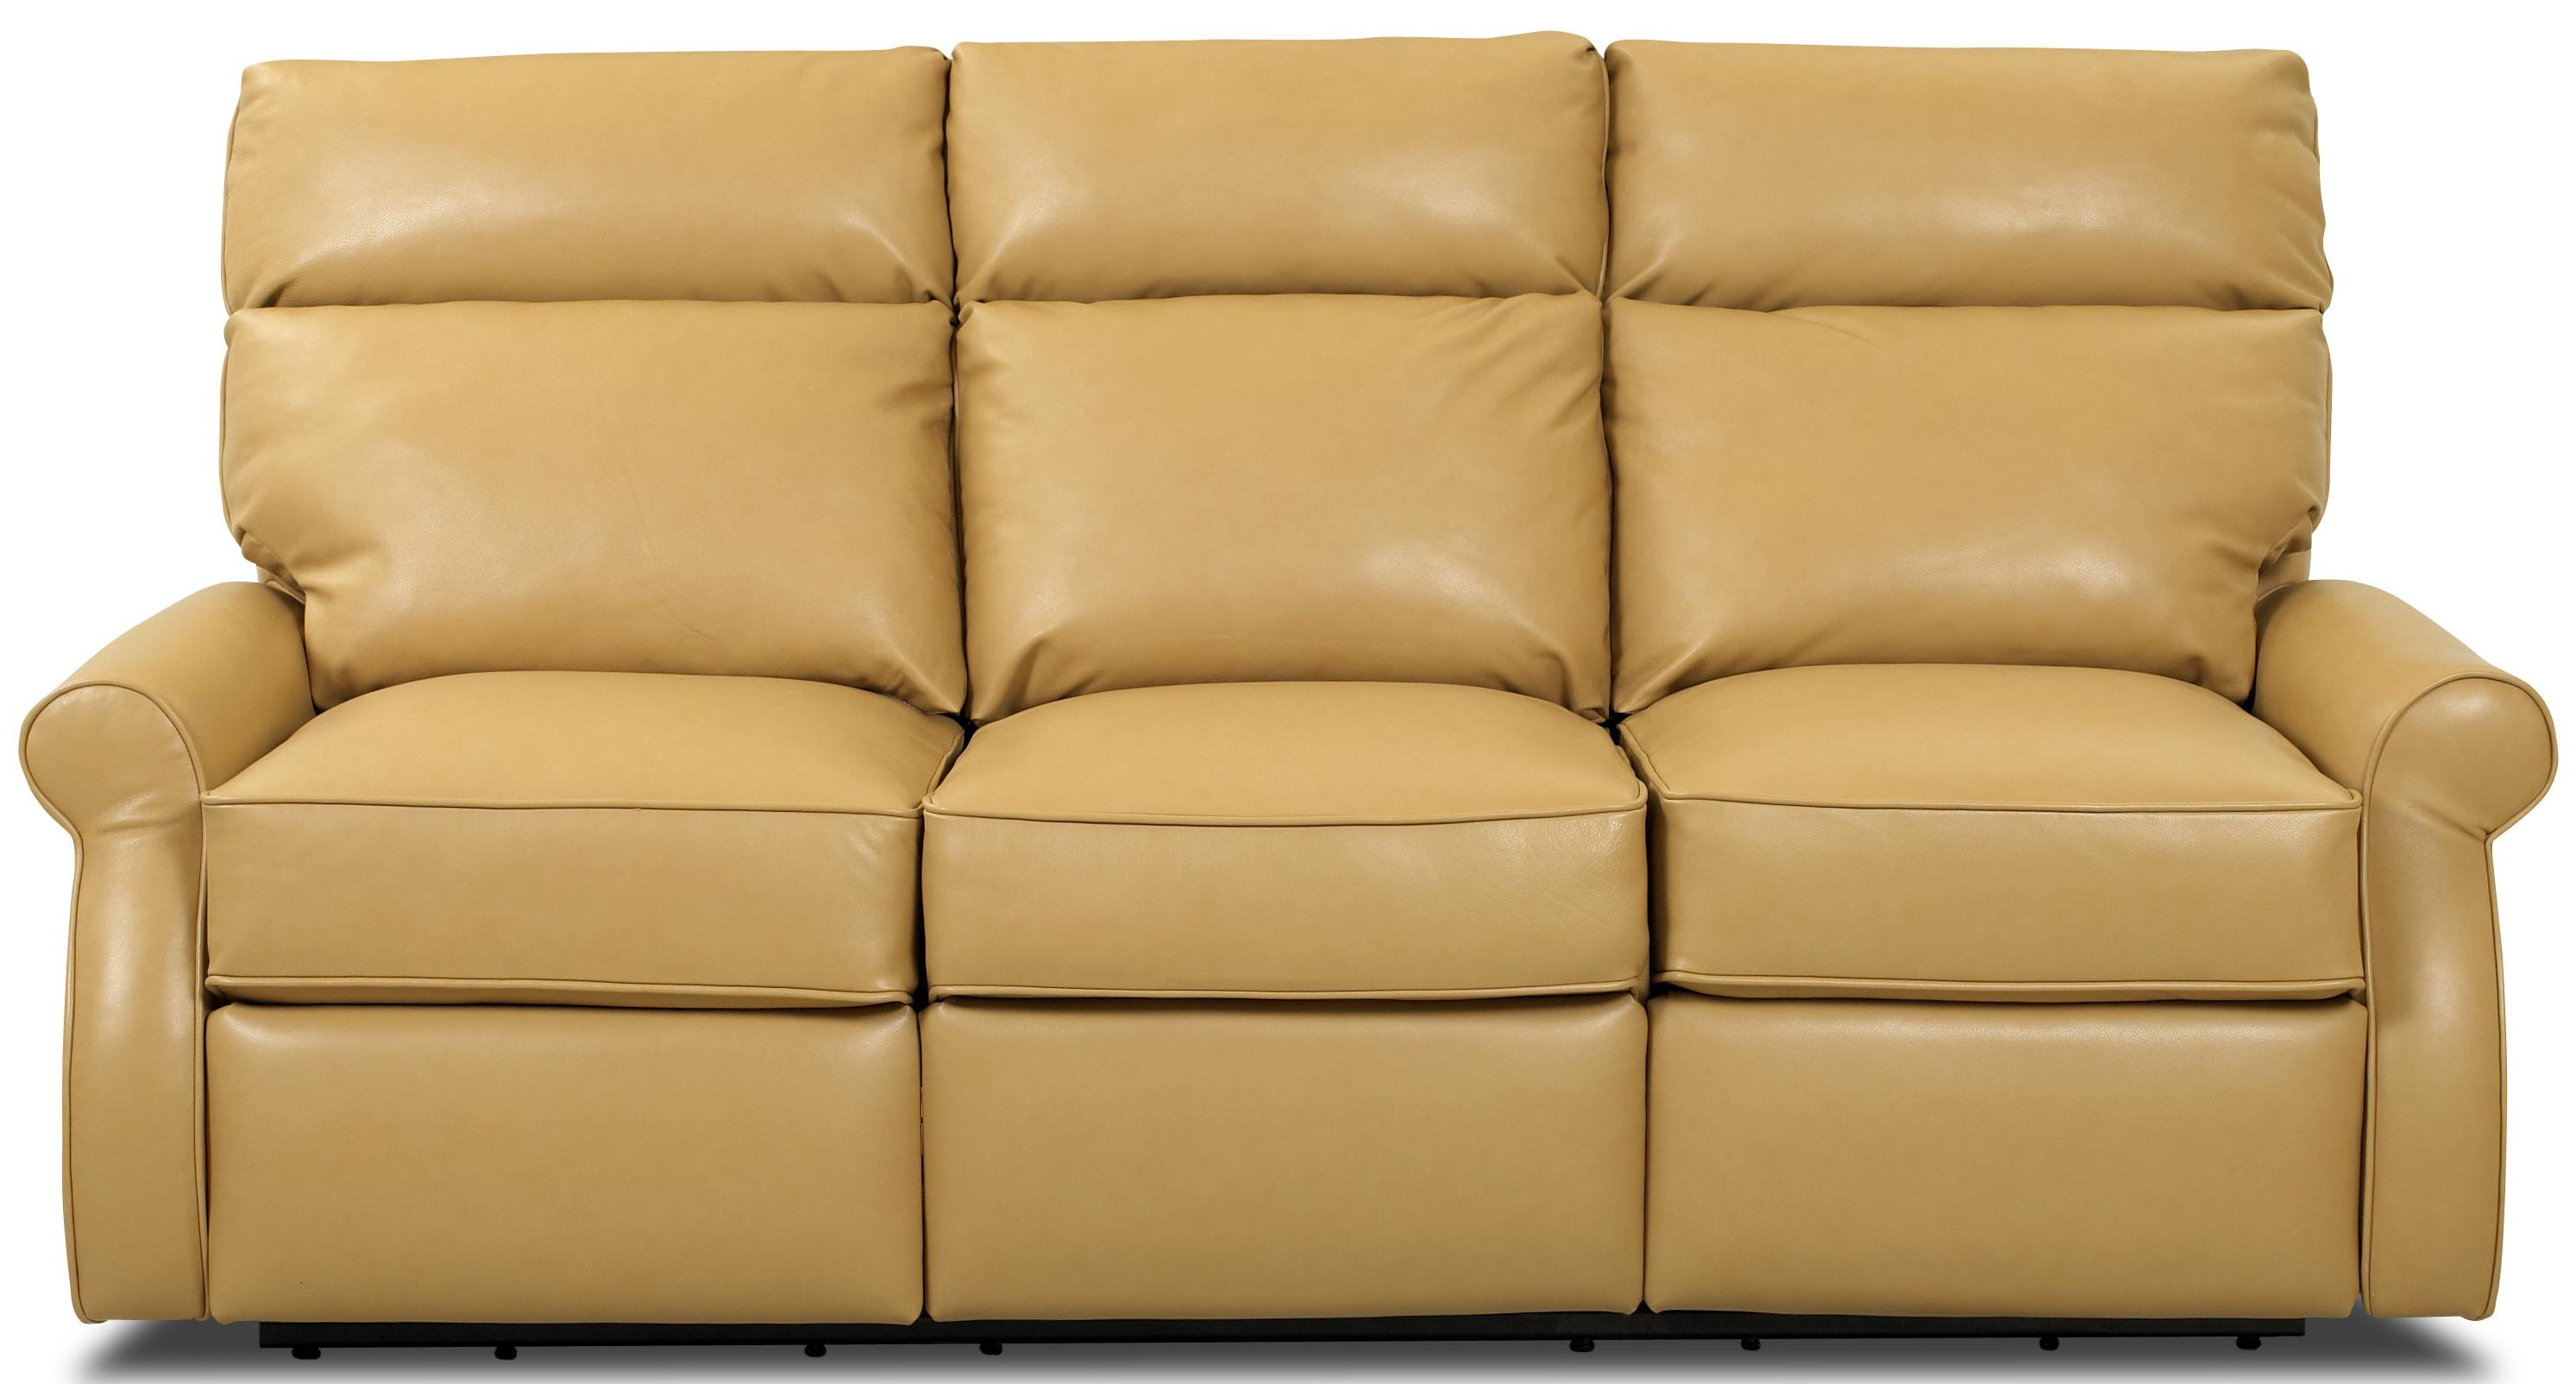 Leslie II Reclining Sofa by Comfort Design at Lagniappe Home Store